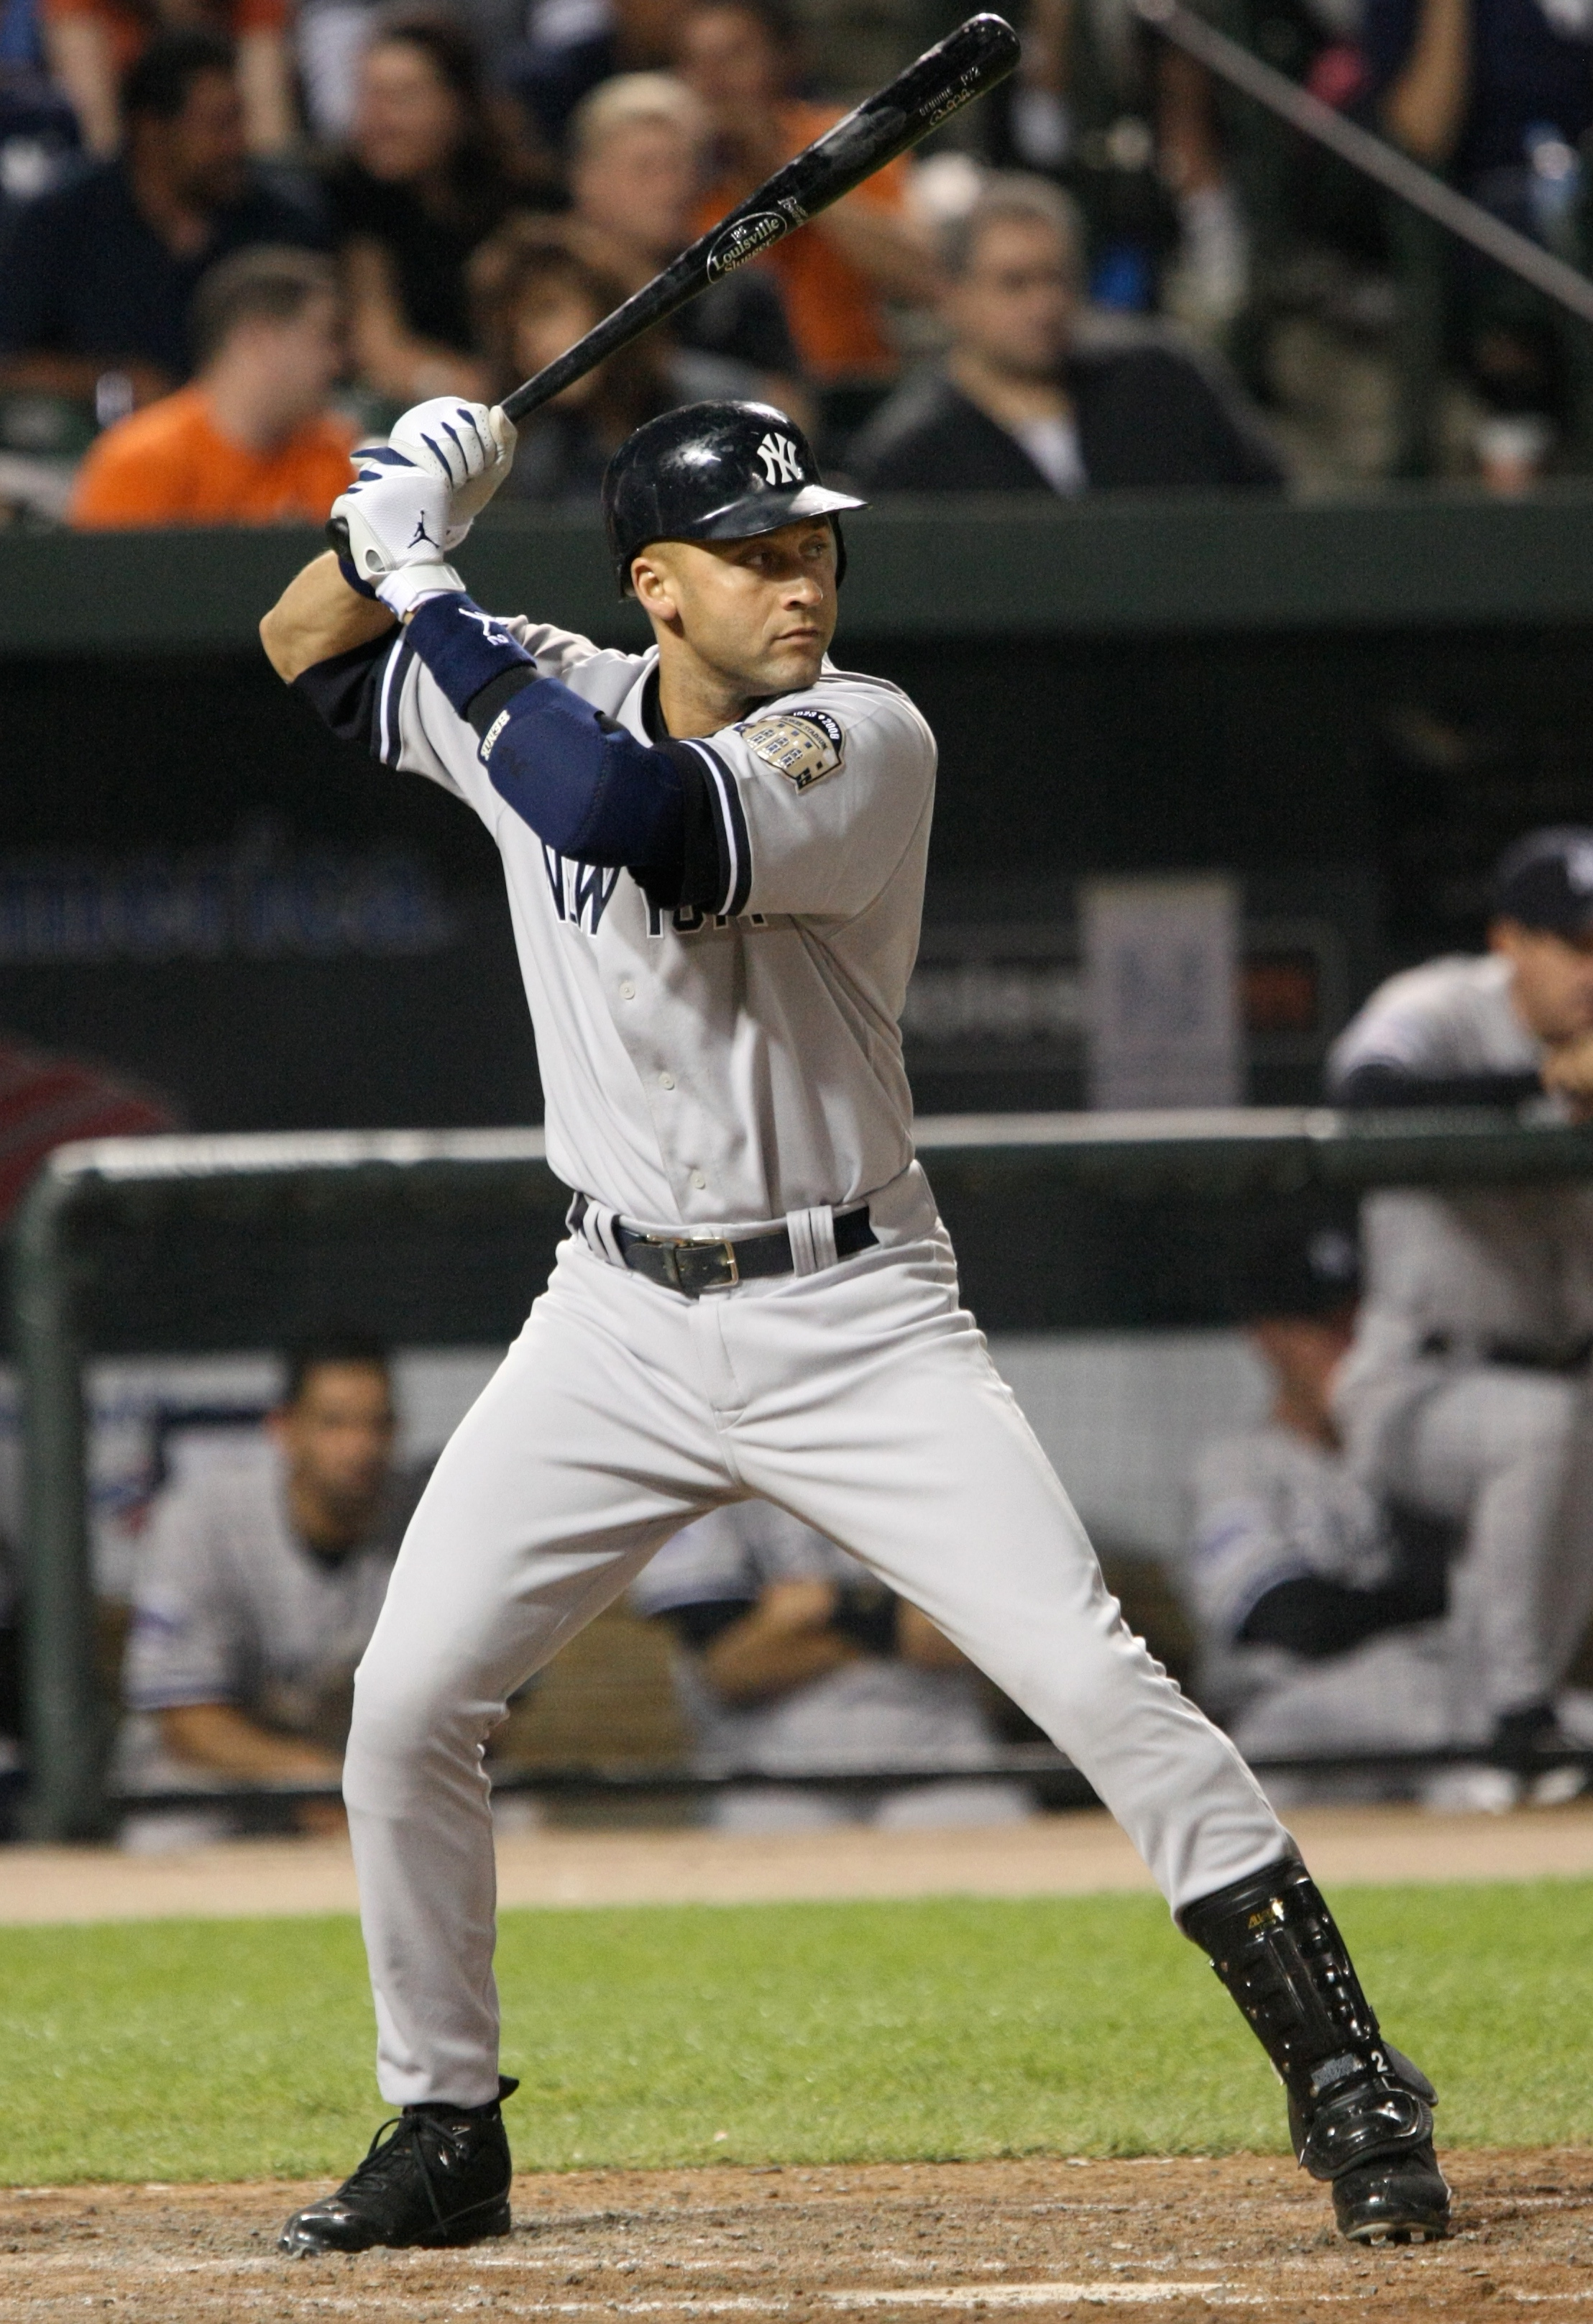 Description Derek Jeter batting stance allison.jpg